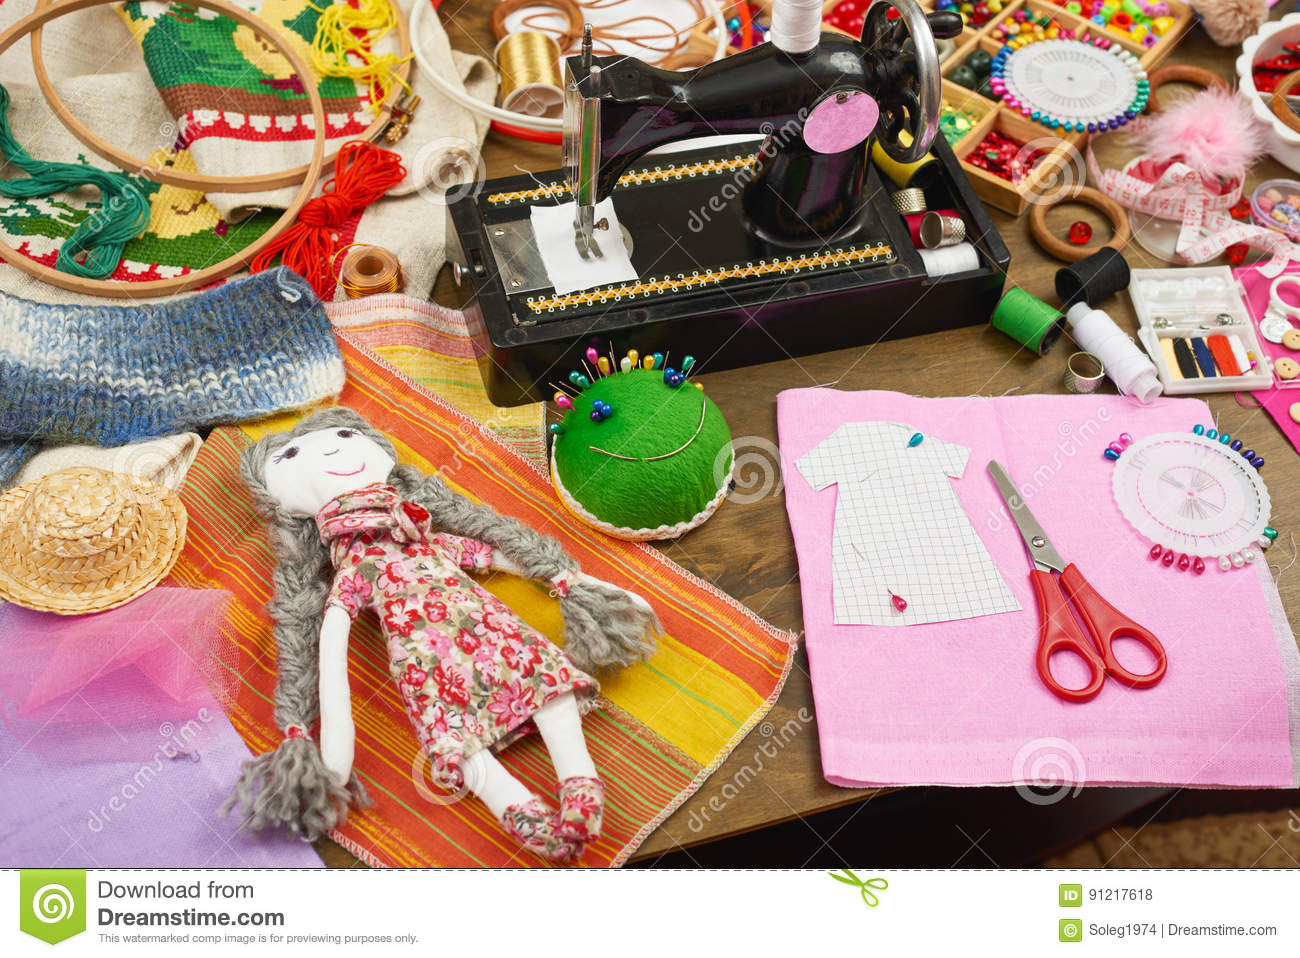 Handmade doll and clothing pattern, sewing accessories top view, seamstress workplace, many object for needlework, embroidery and